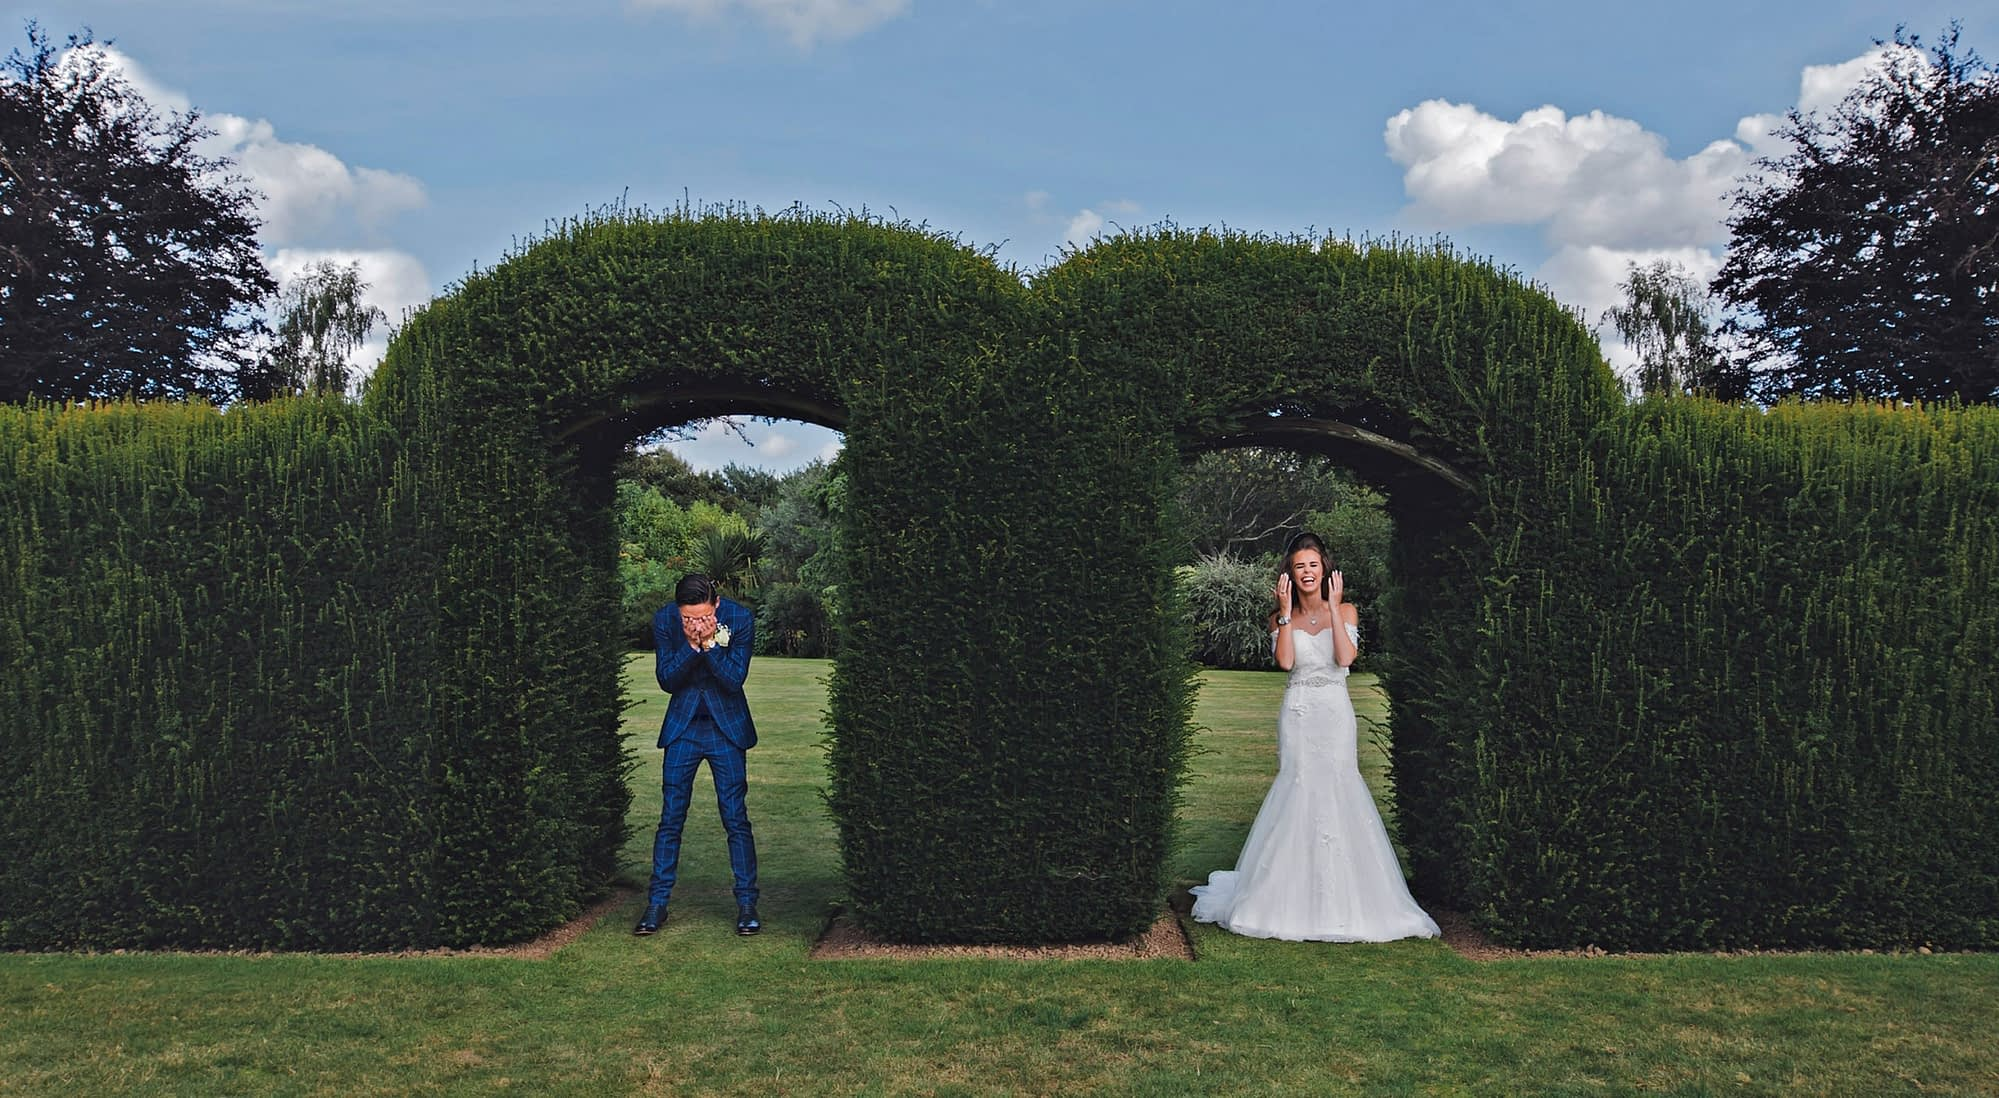 wedding couple laughing in front of a hedge